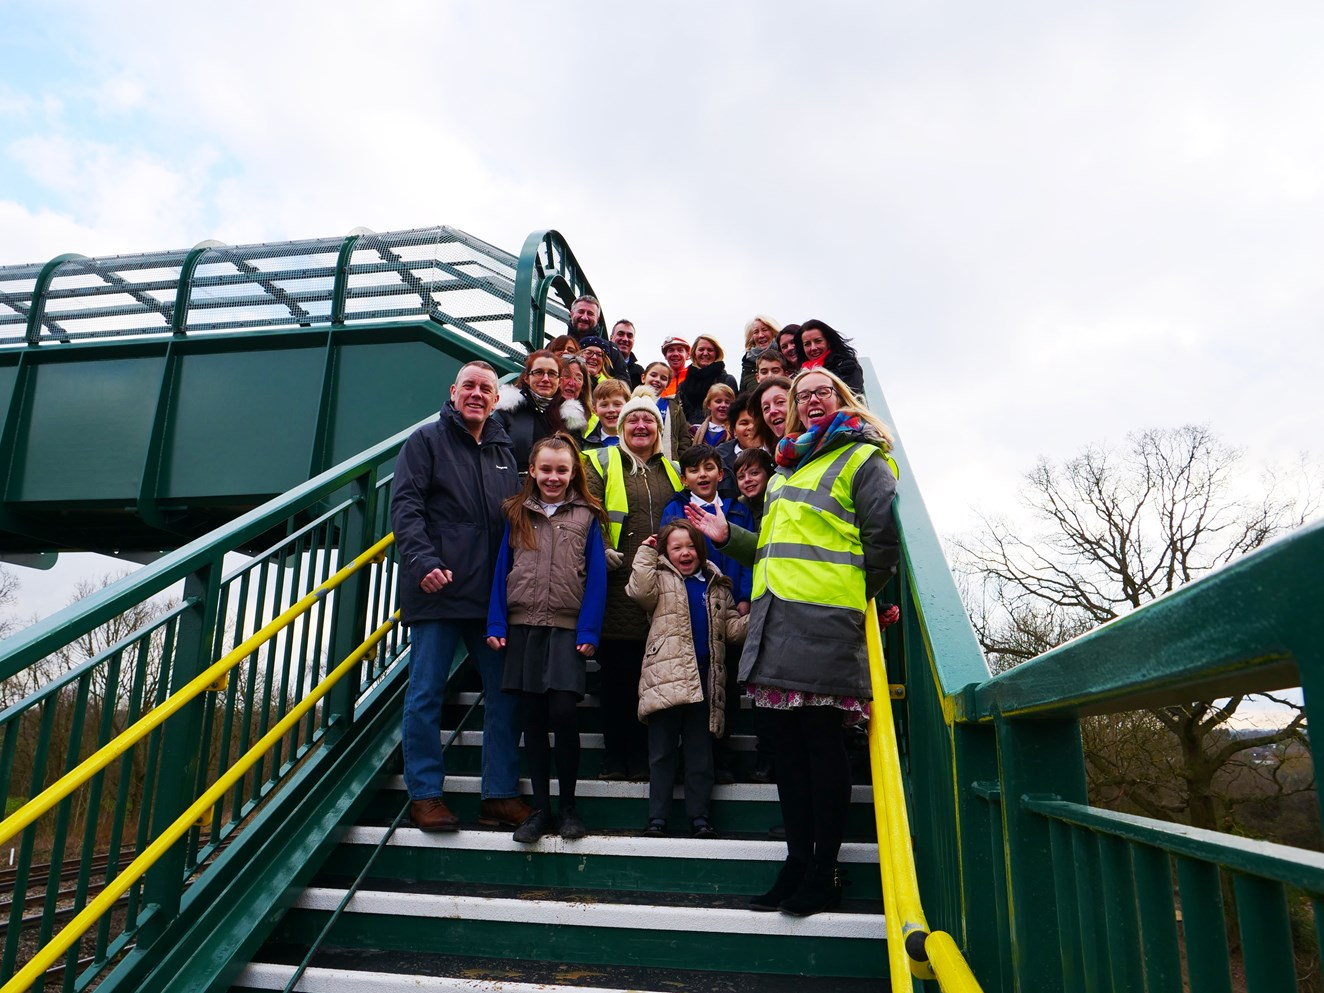 Network Rail closes Britain's busiest foot crossing – keeping families safe from 90mph trains in Surrey village: Dean Farm School